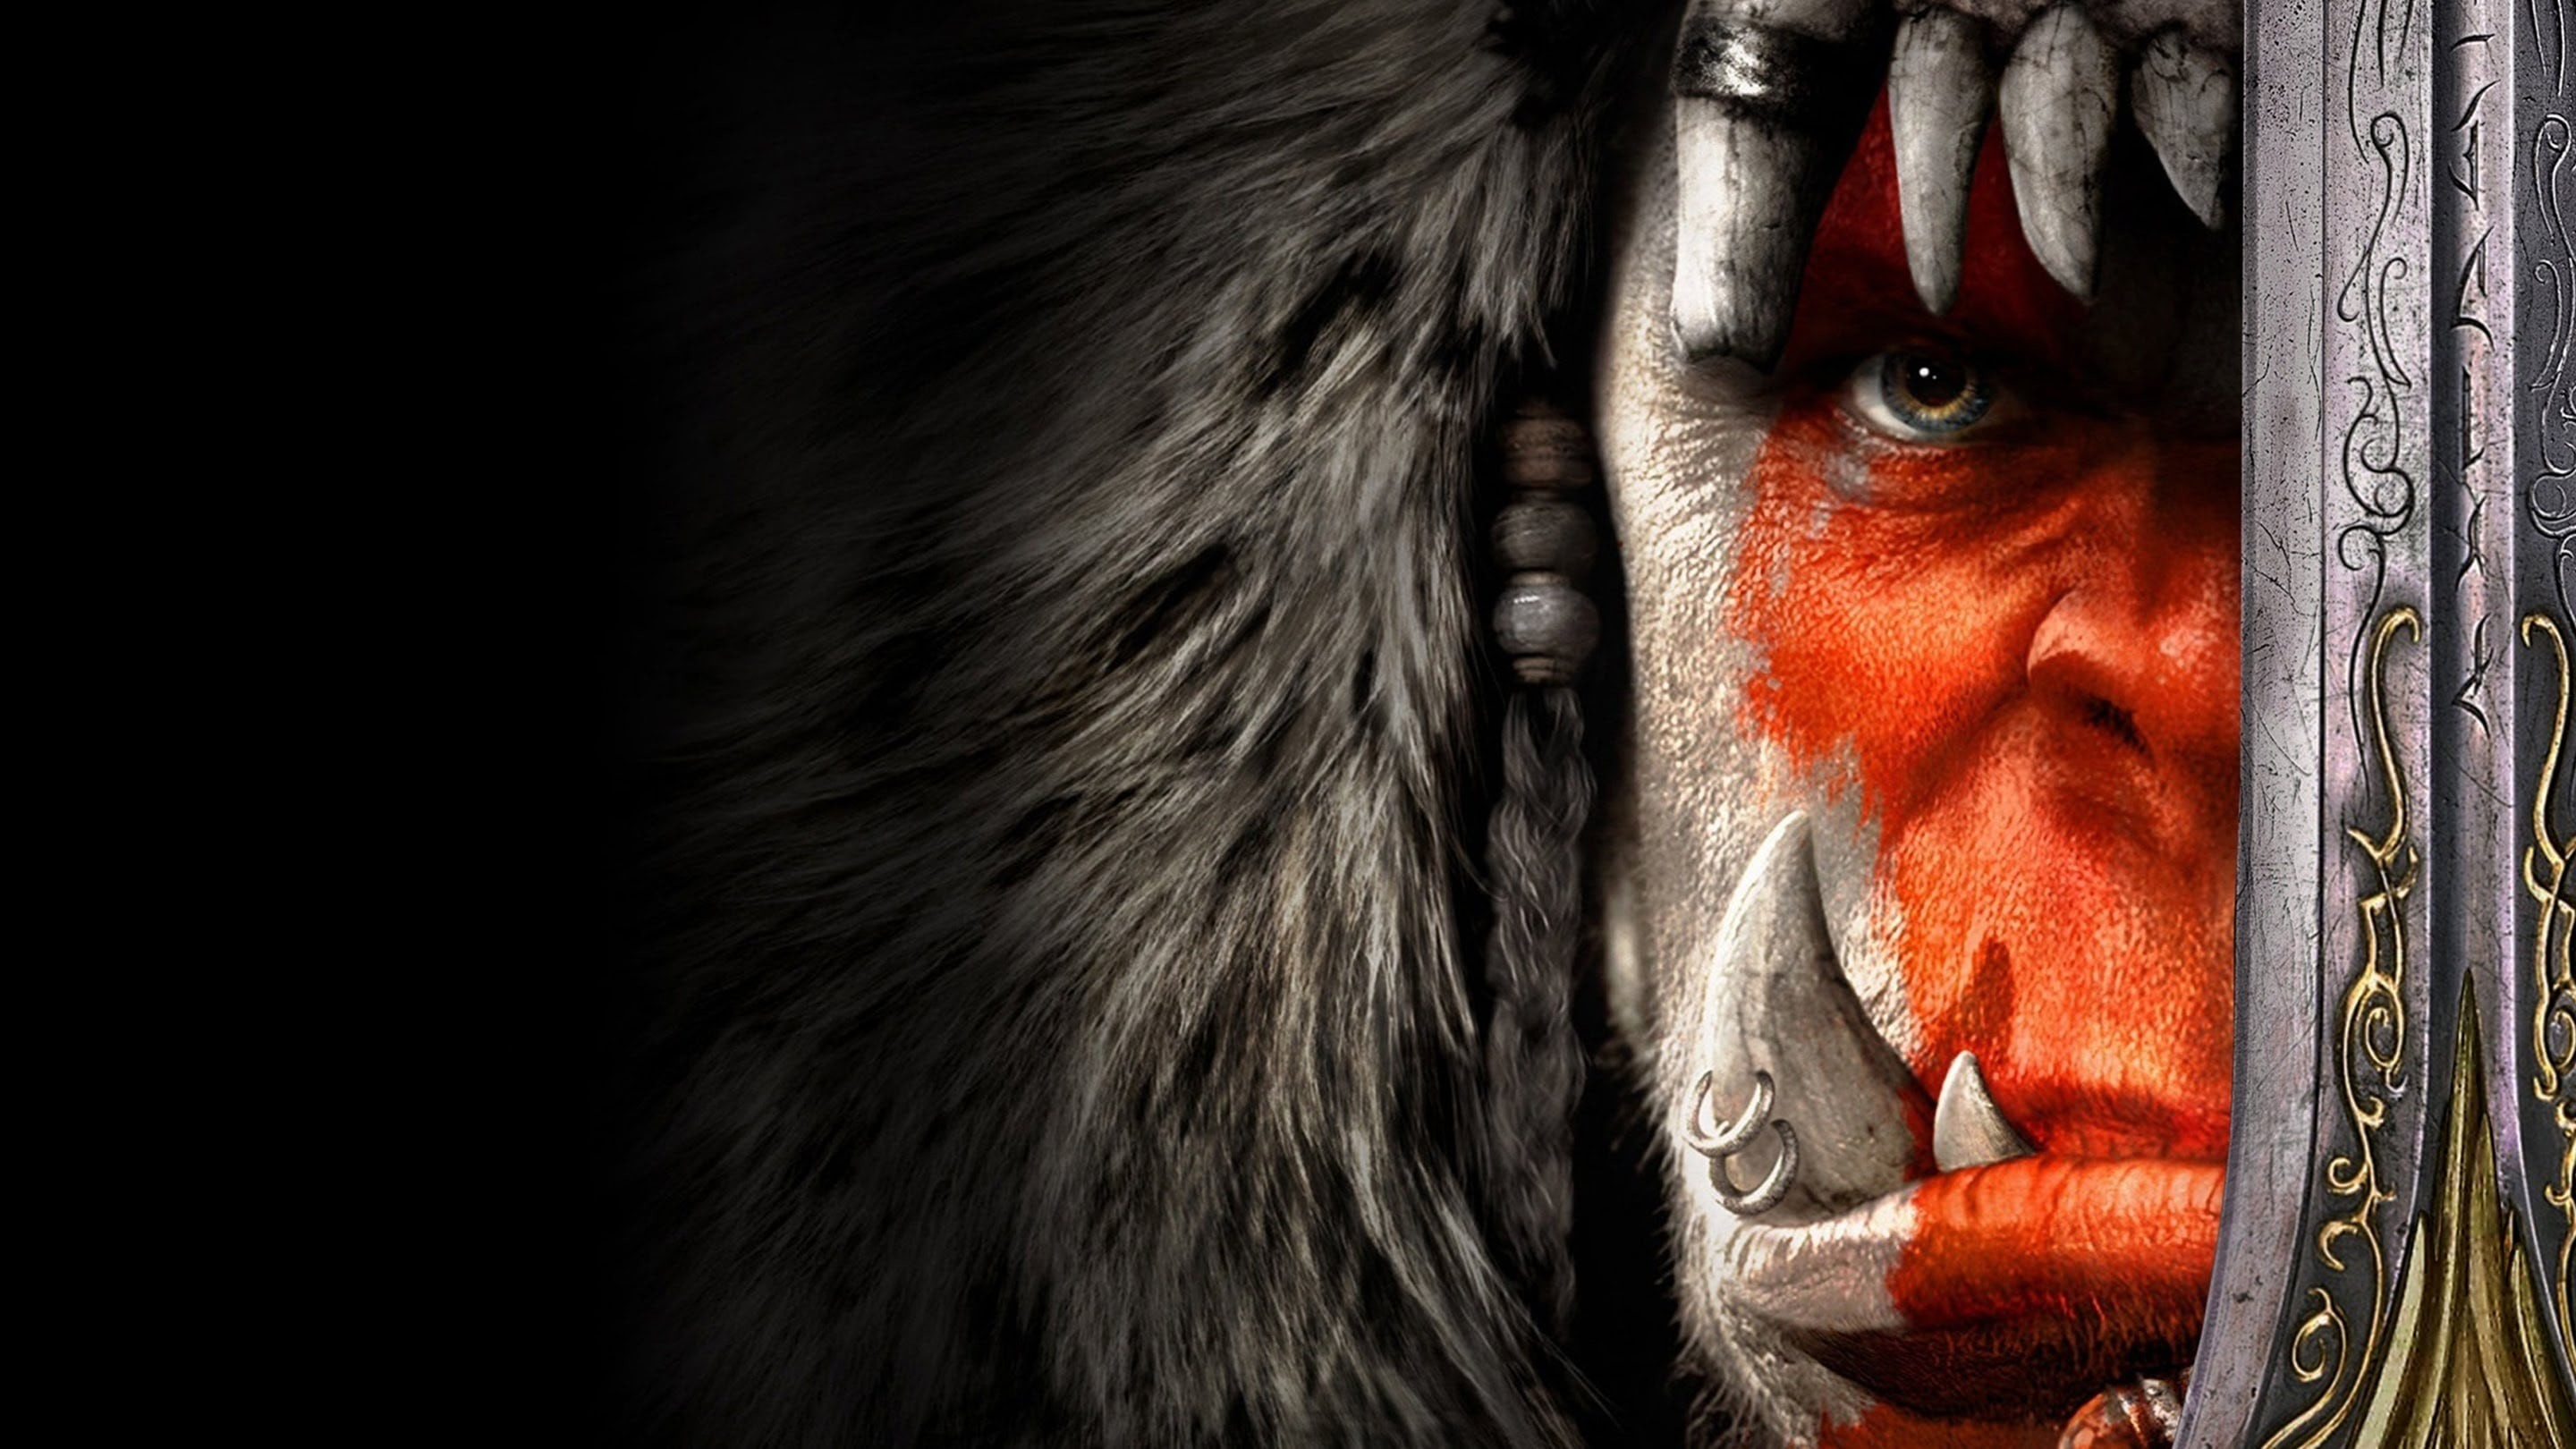 2880x1620 WOW: Durotan Wallpapers hd